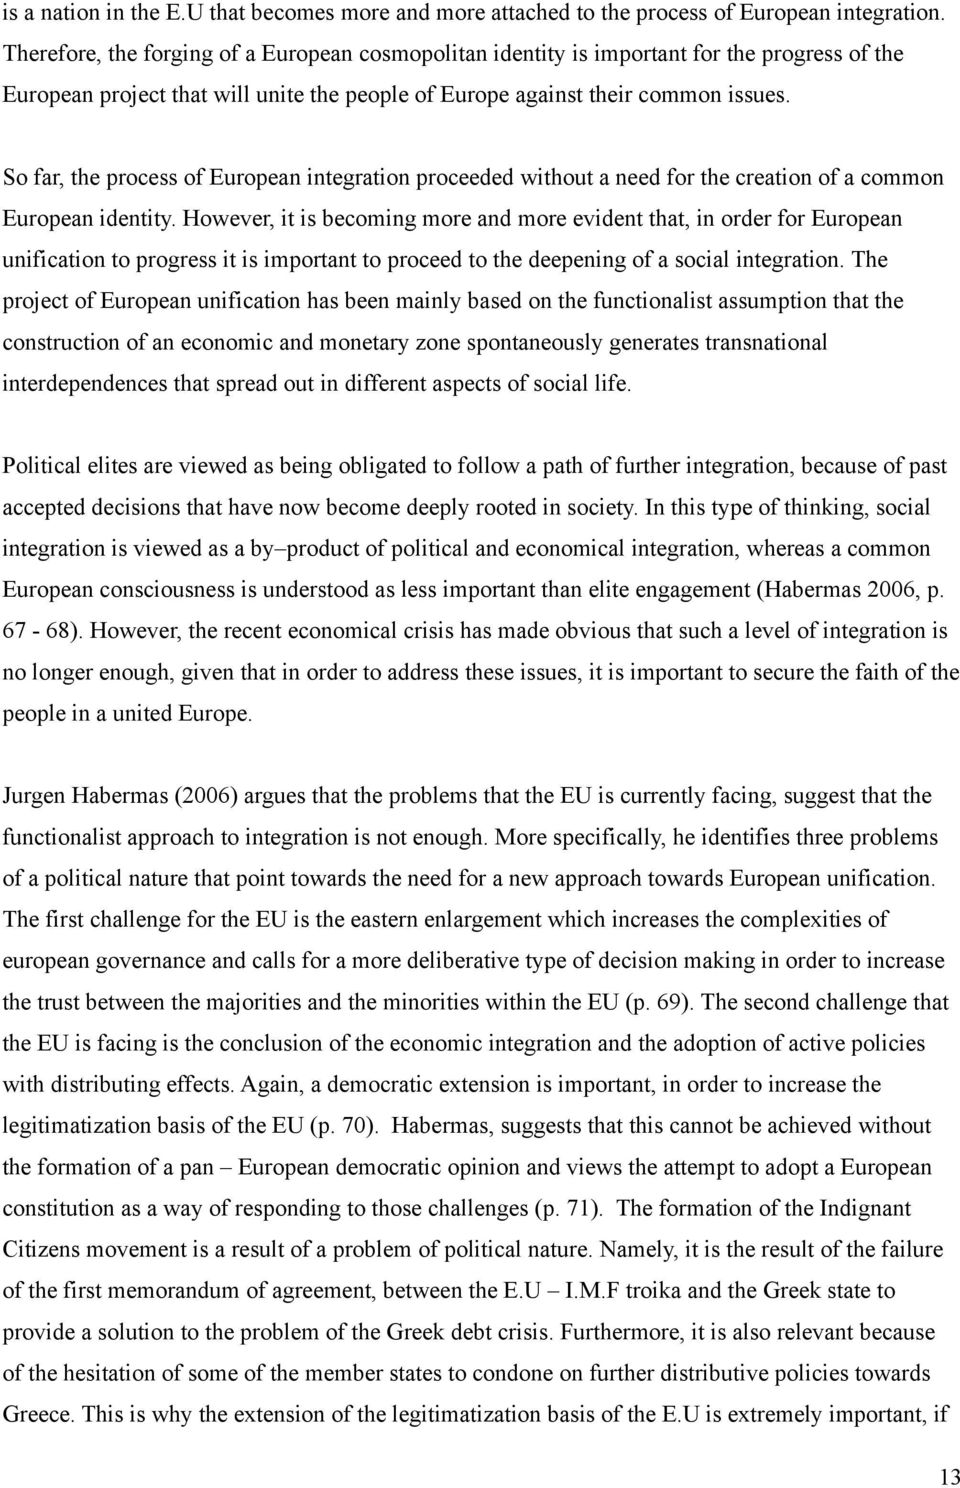 So far, the process of European integration proceeded without a need for the creation of a common European identity.